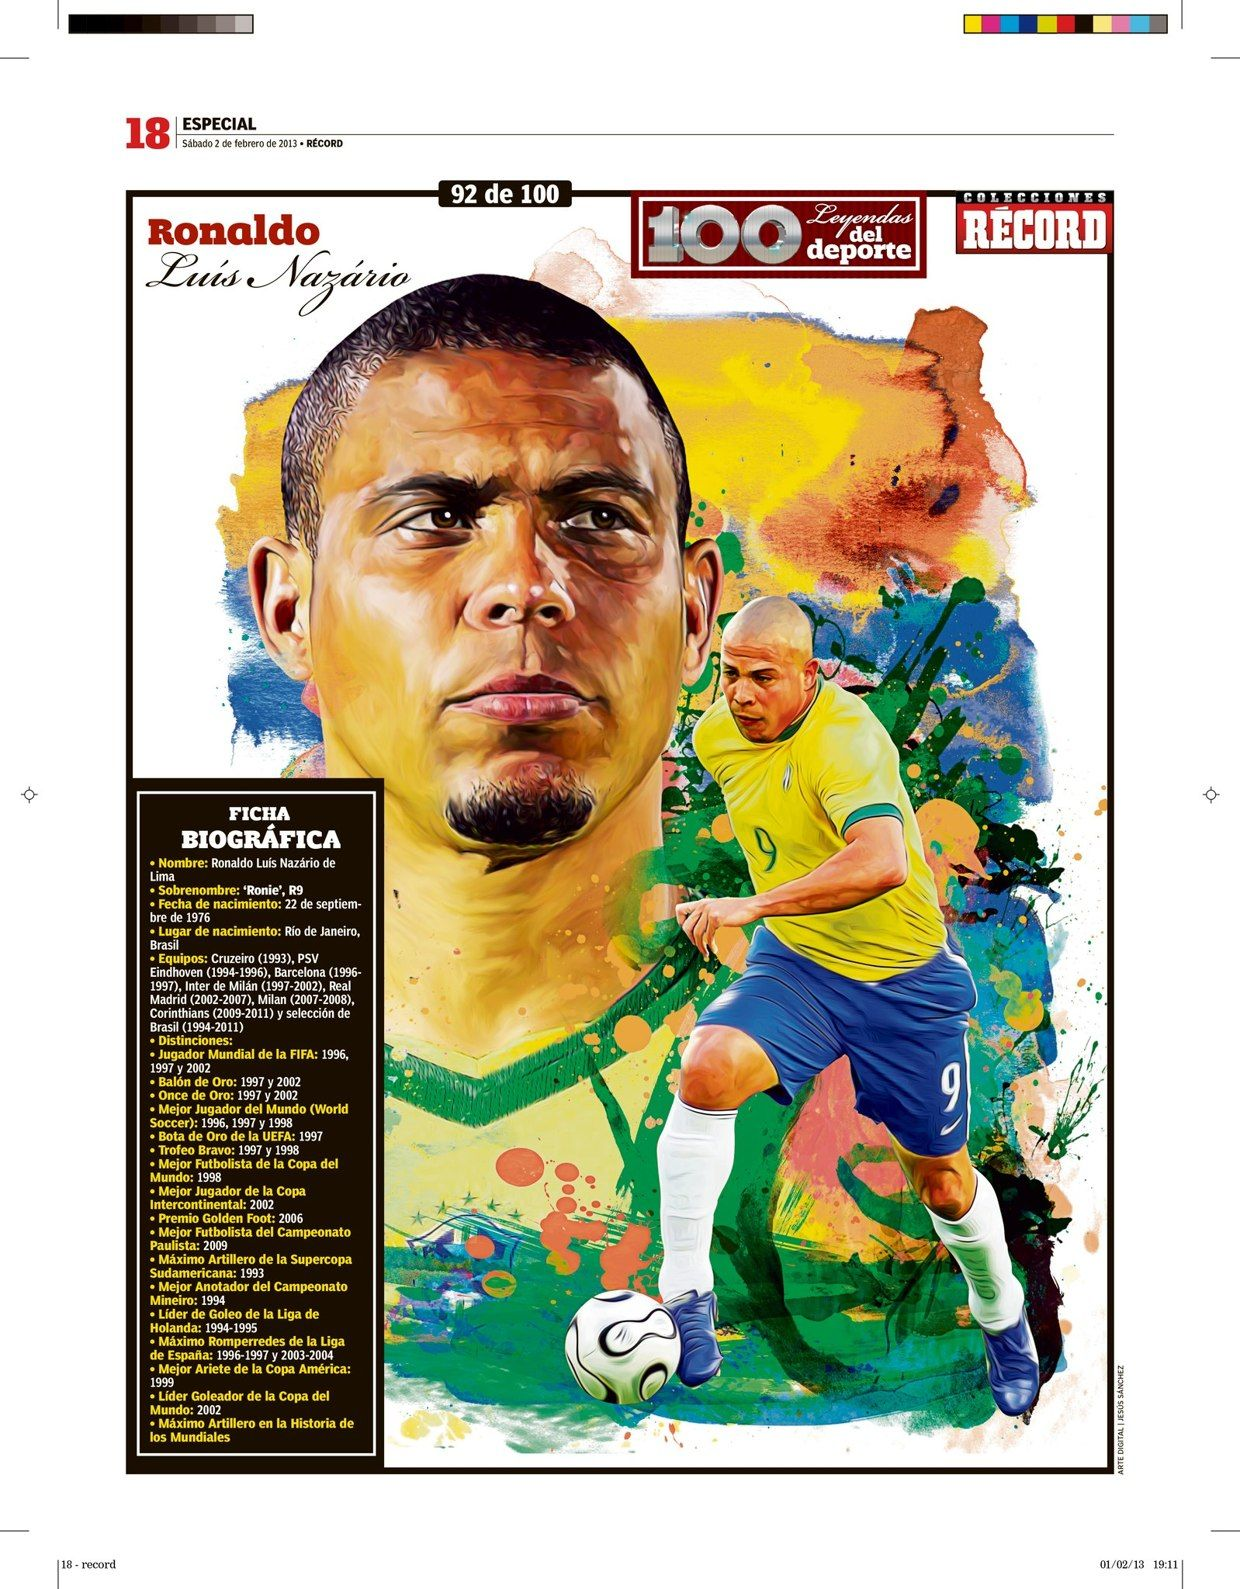 100 Leyendas Del Deporte 100 Sports Legends On Behance Football Ronaldo Football Soccer Artwork Ronaldo Luis Nazario De Lima